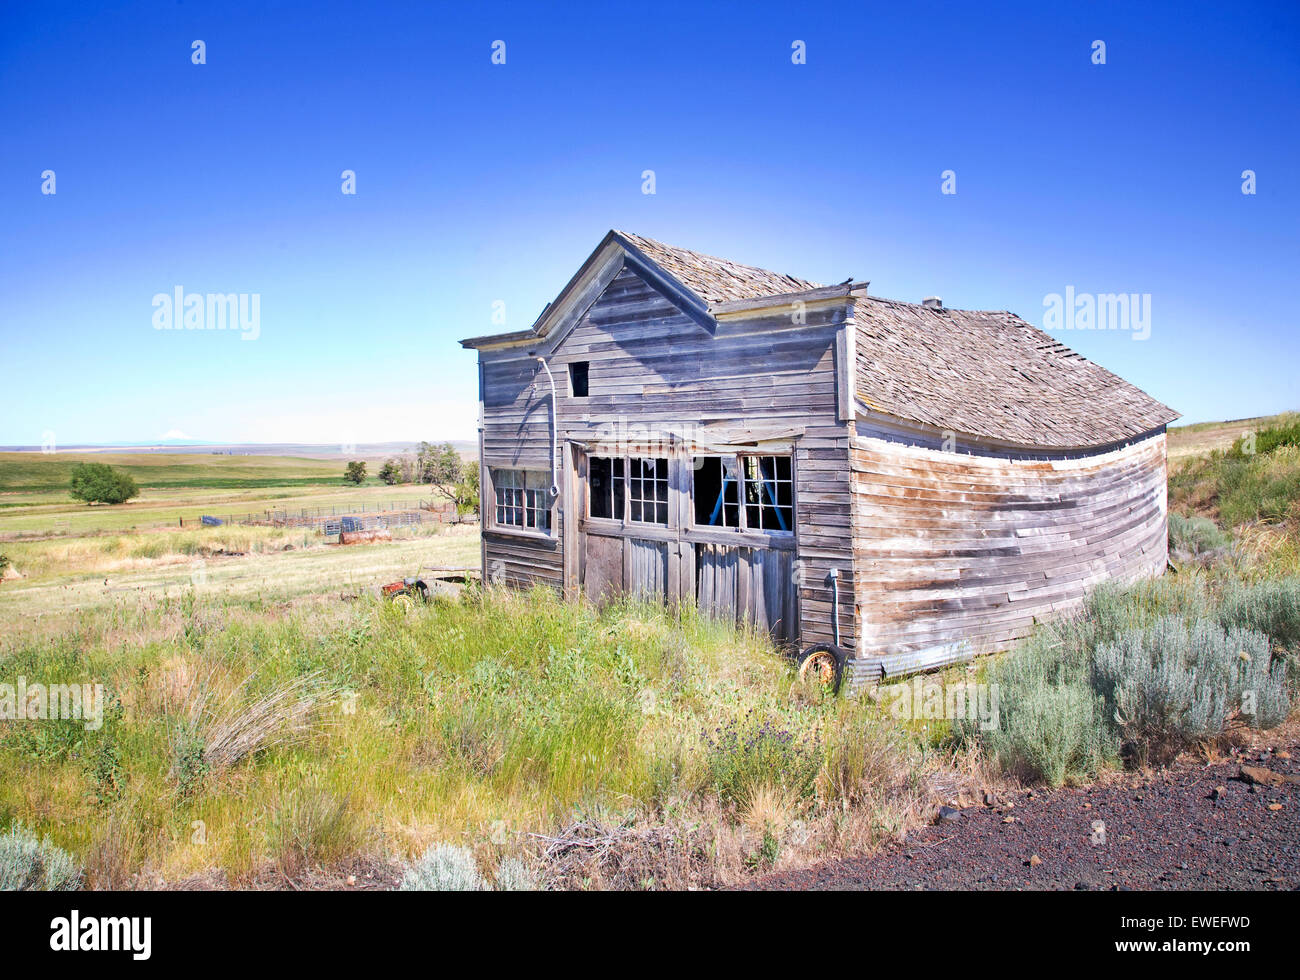 A 1930s era garage on the prairie of northern Oregon near the tiny town of Mayville. - Stock Image